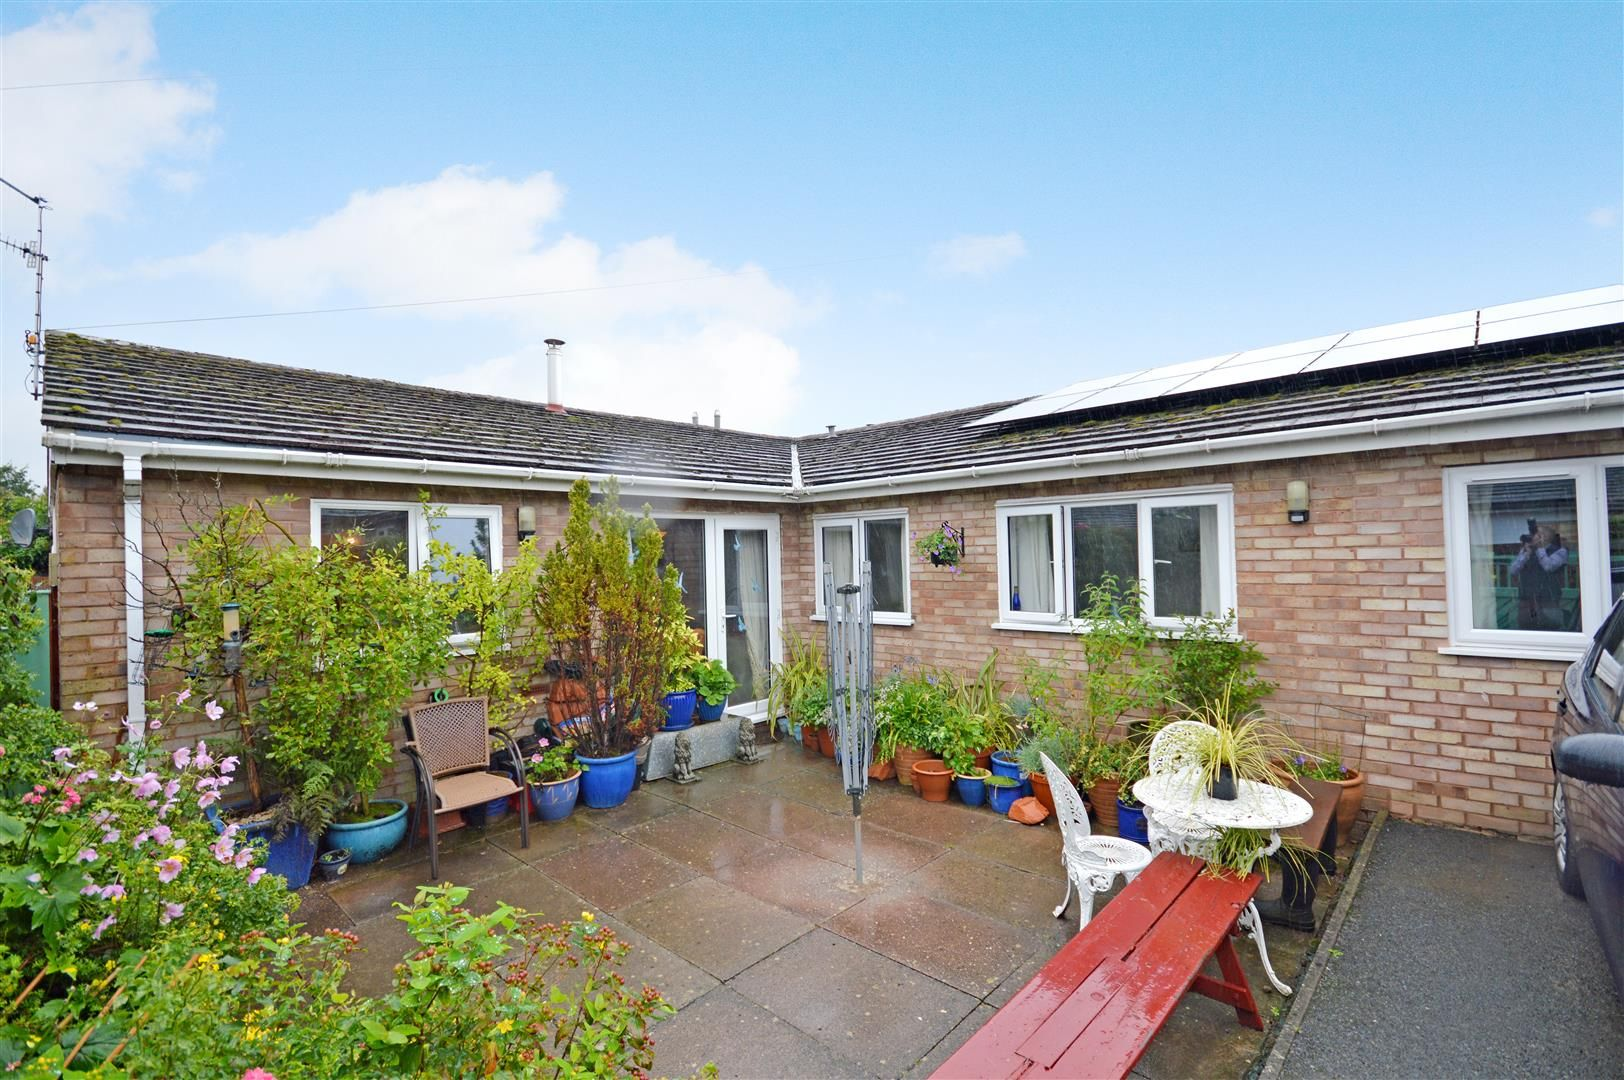 3 bed semi-detached bungalow for sale in Peterchurch, HR2